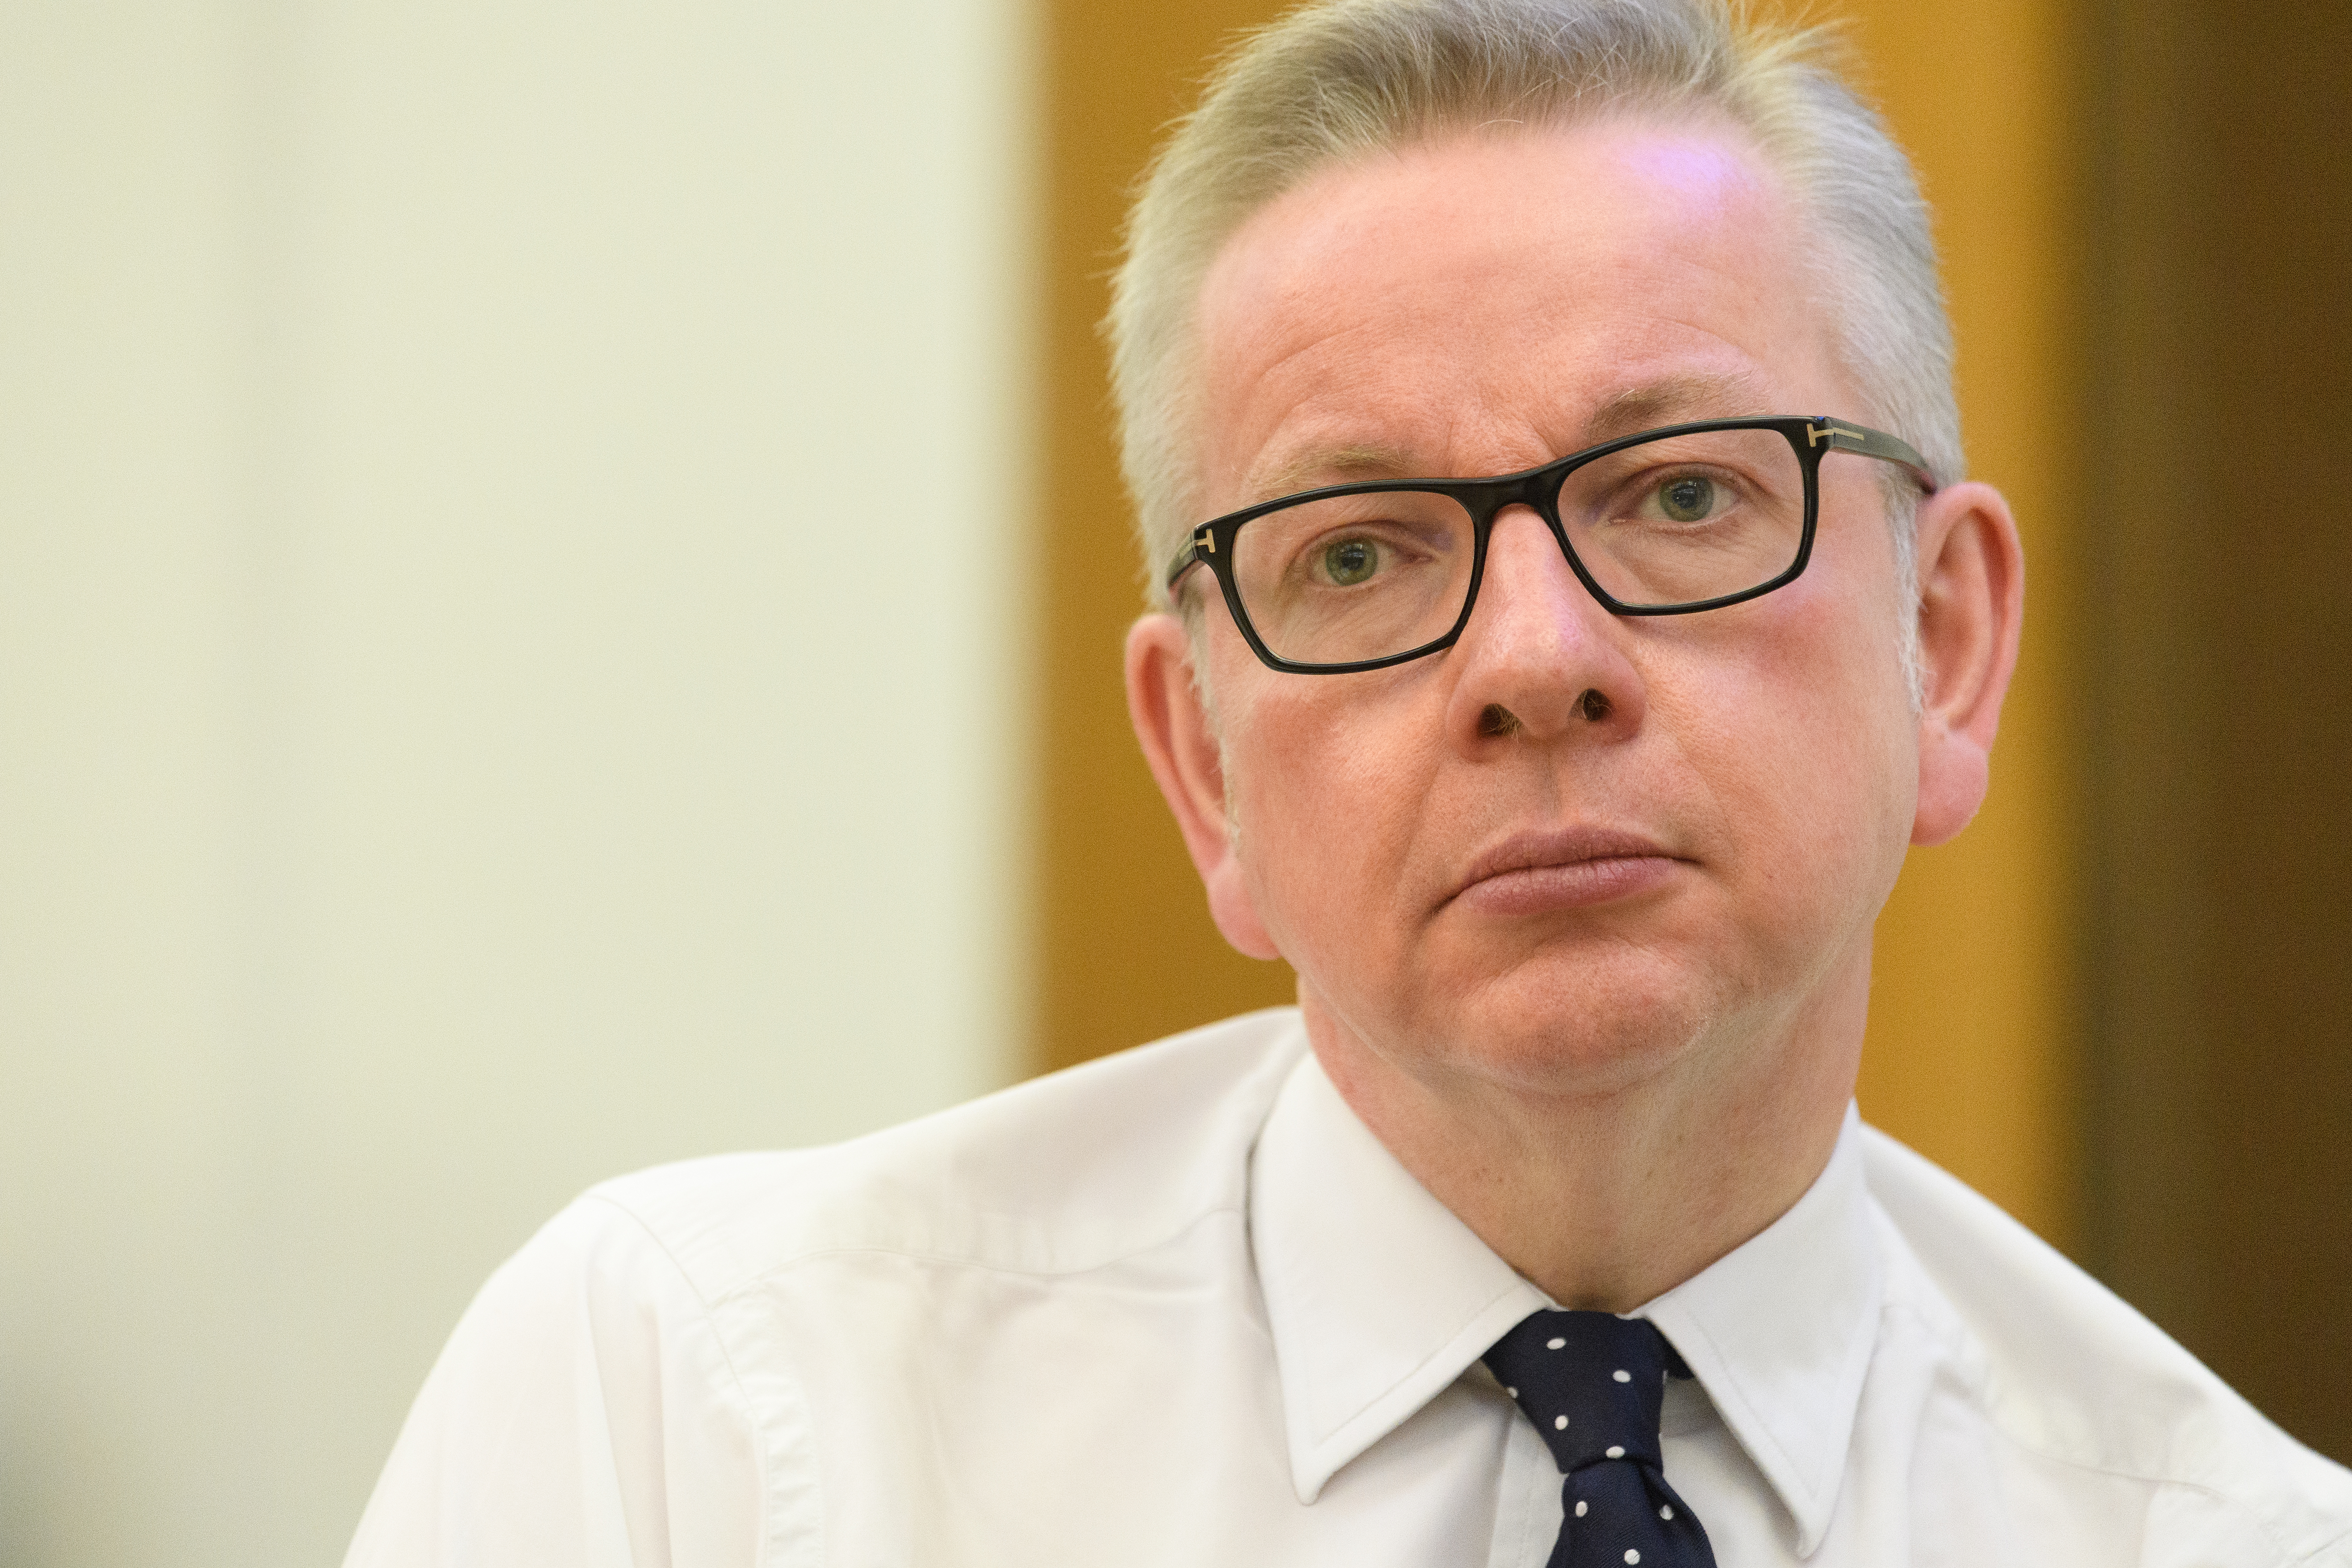 Michael Gove's step up to the plate U.K. food waste initiative offers solutions for food waste at home and in London restaurants